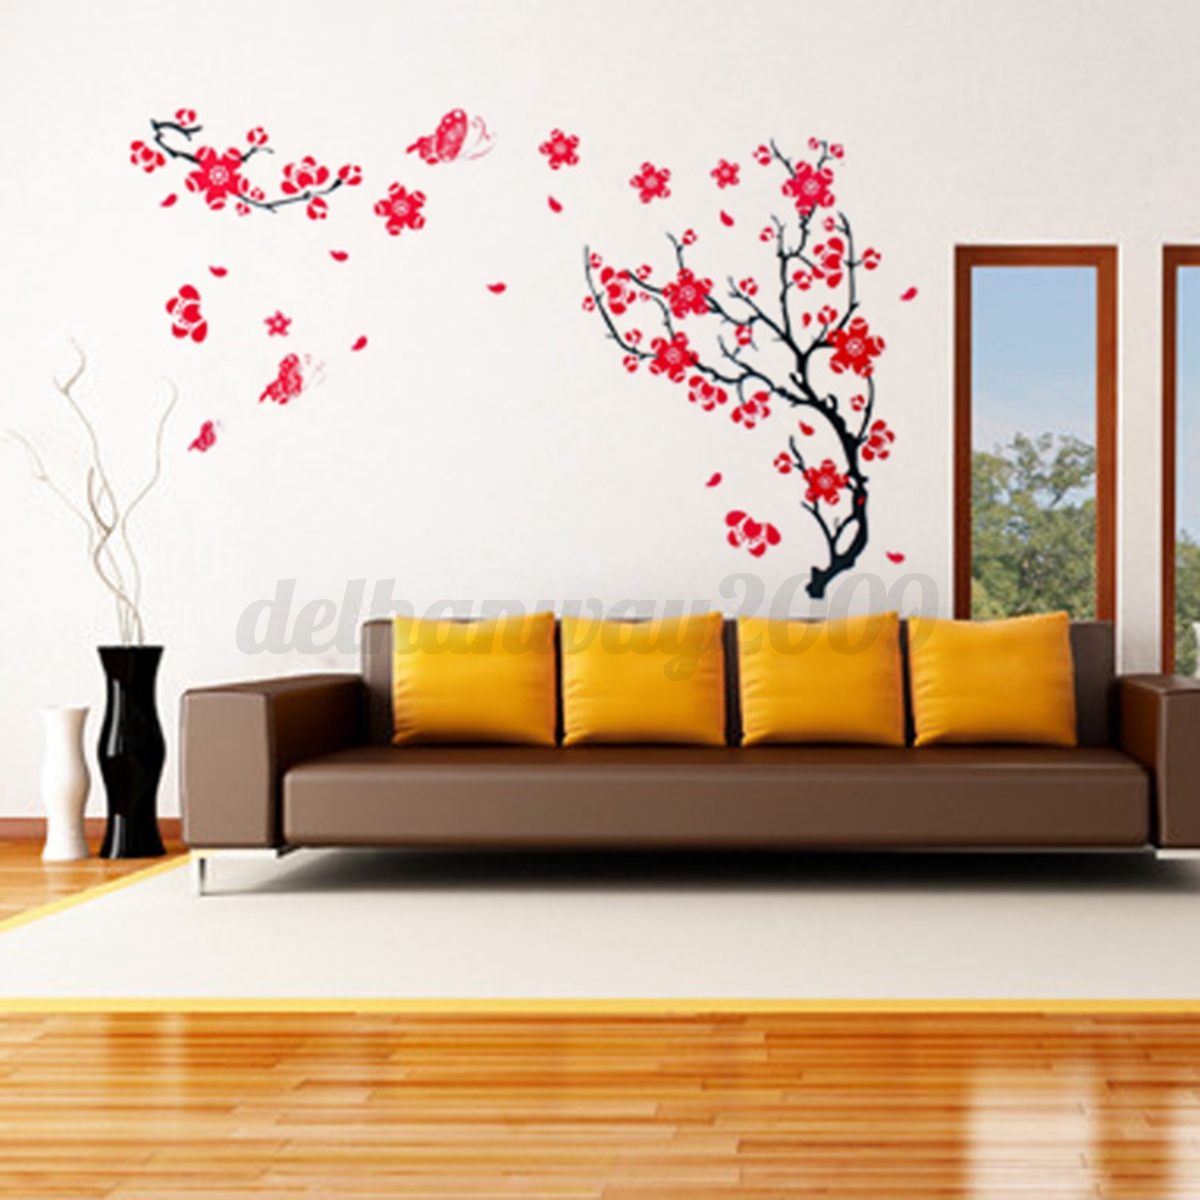 DIY Removable Art Vinyl Quote Wall Stickers Decal Mural